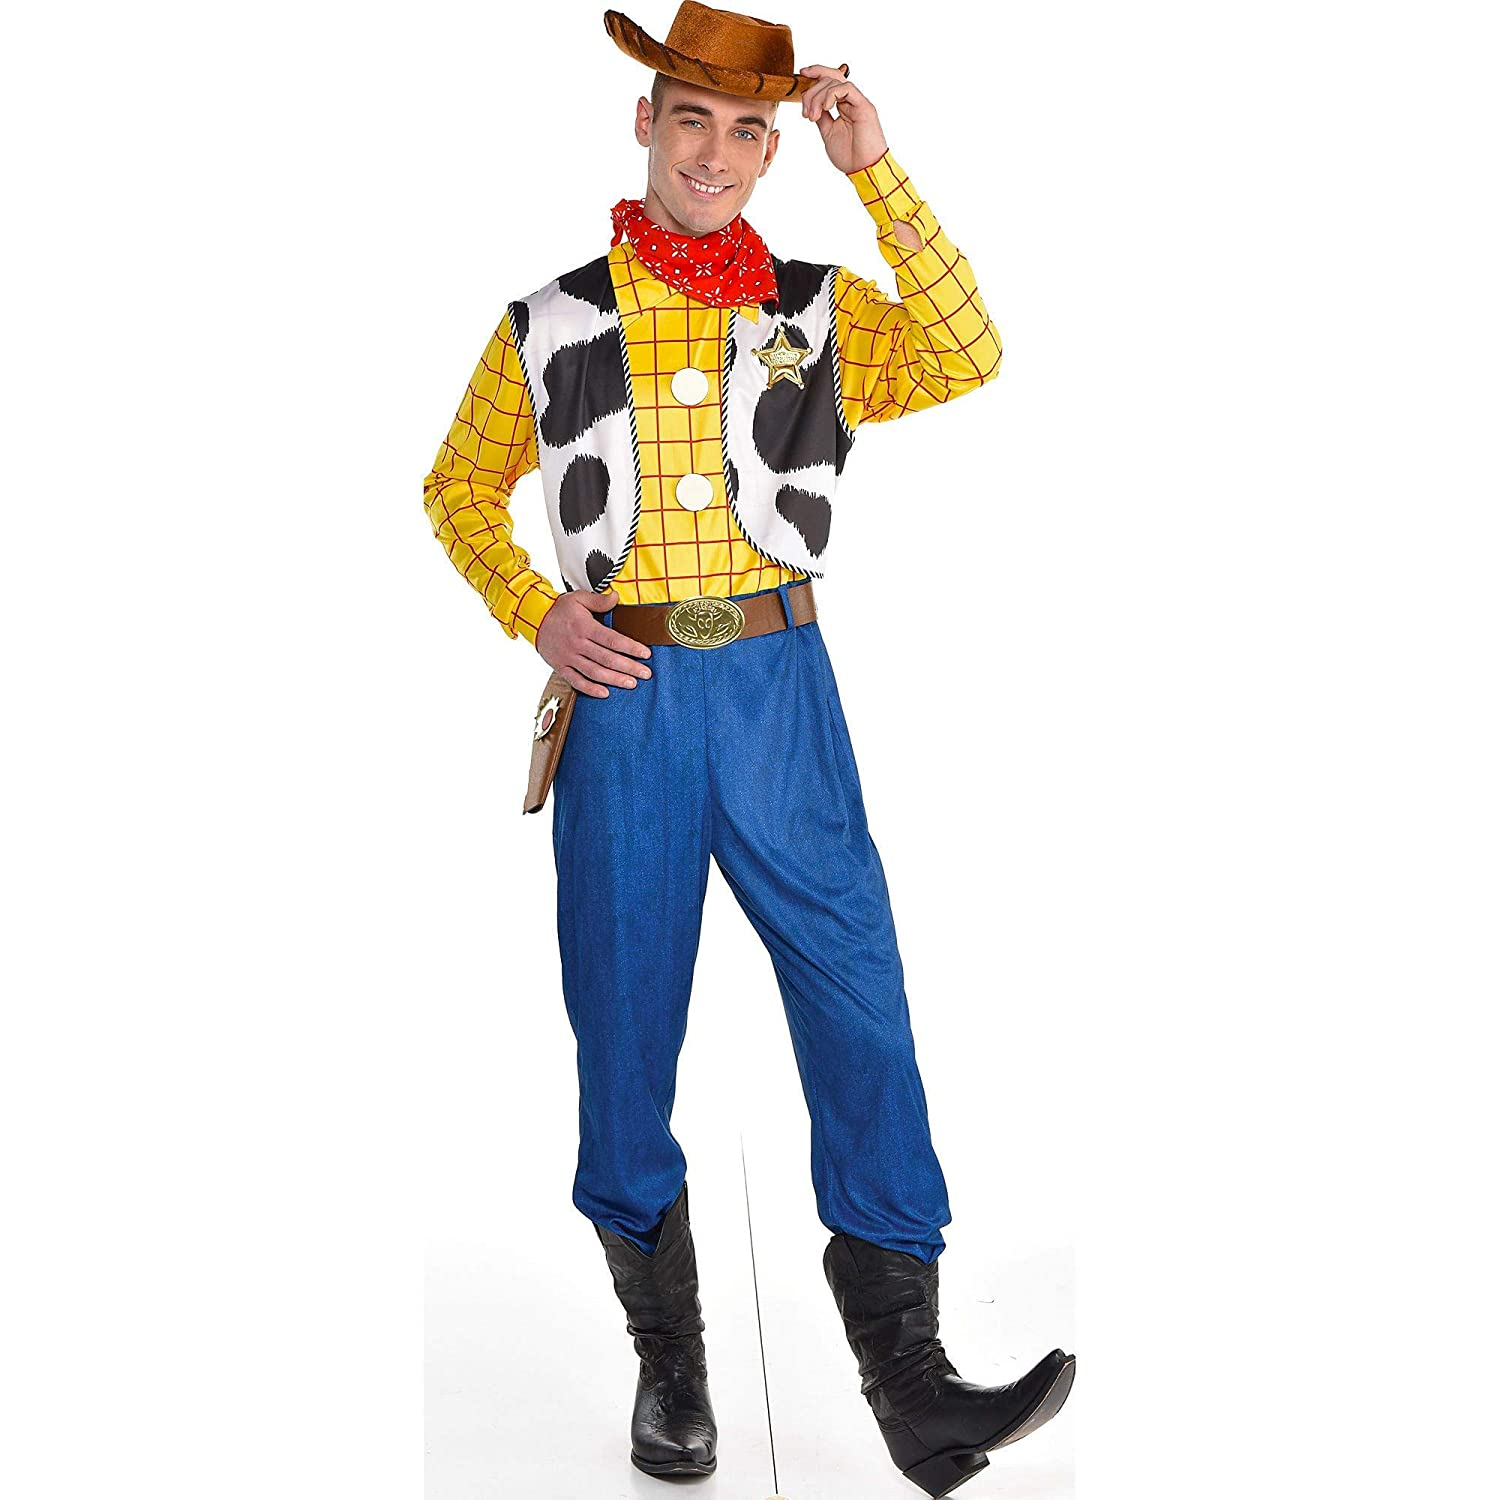 Party City Woody Halloween Costume for Men, Toy Story 4, Standard, with  Accessories